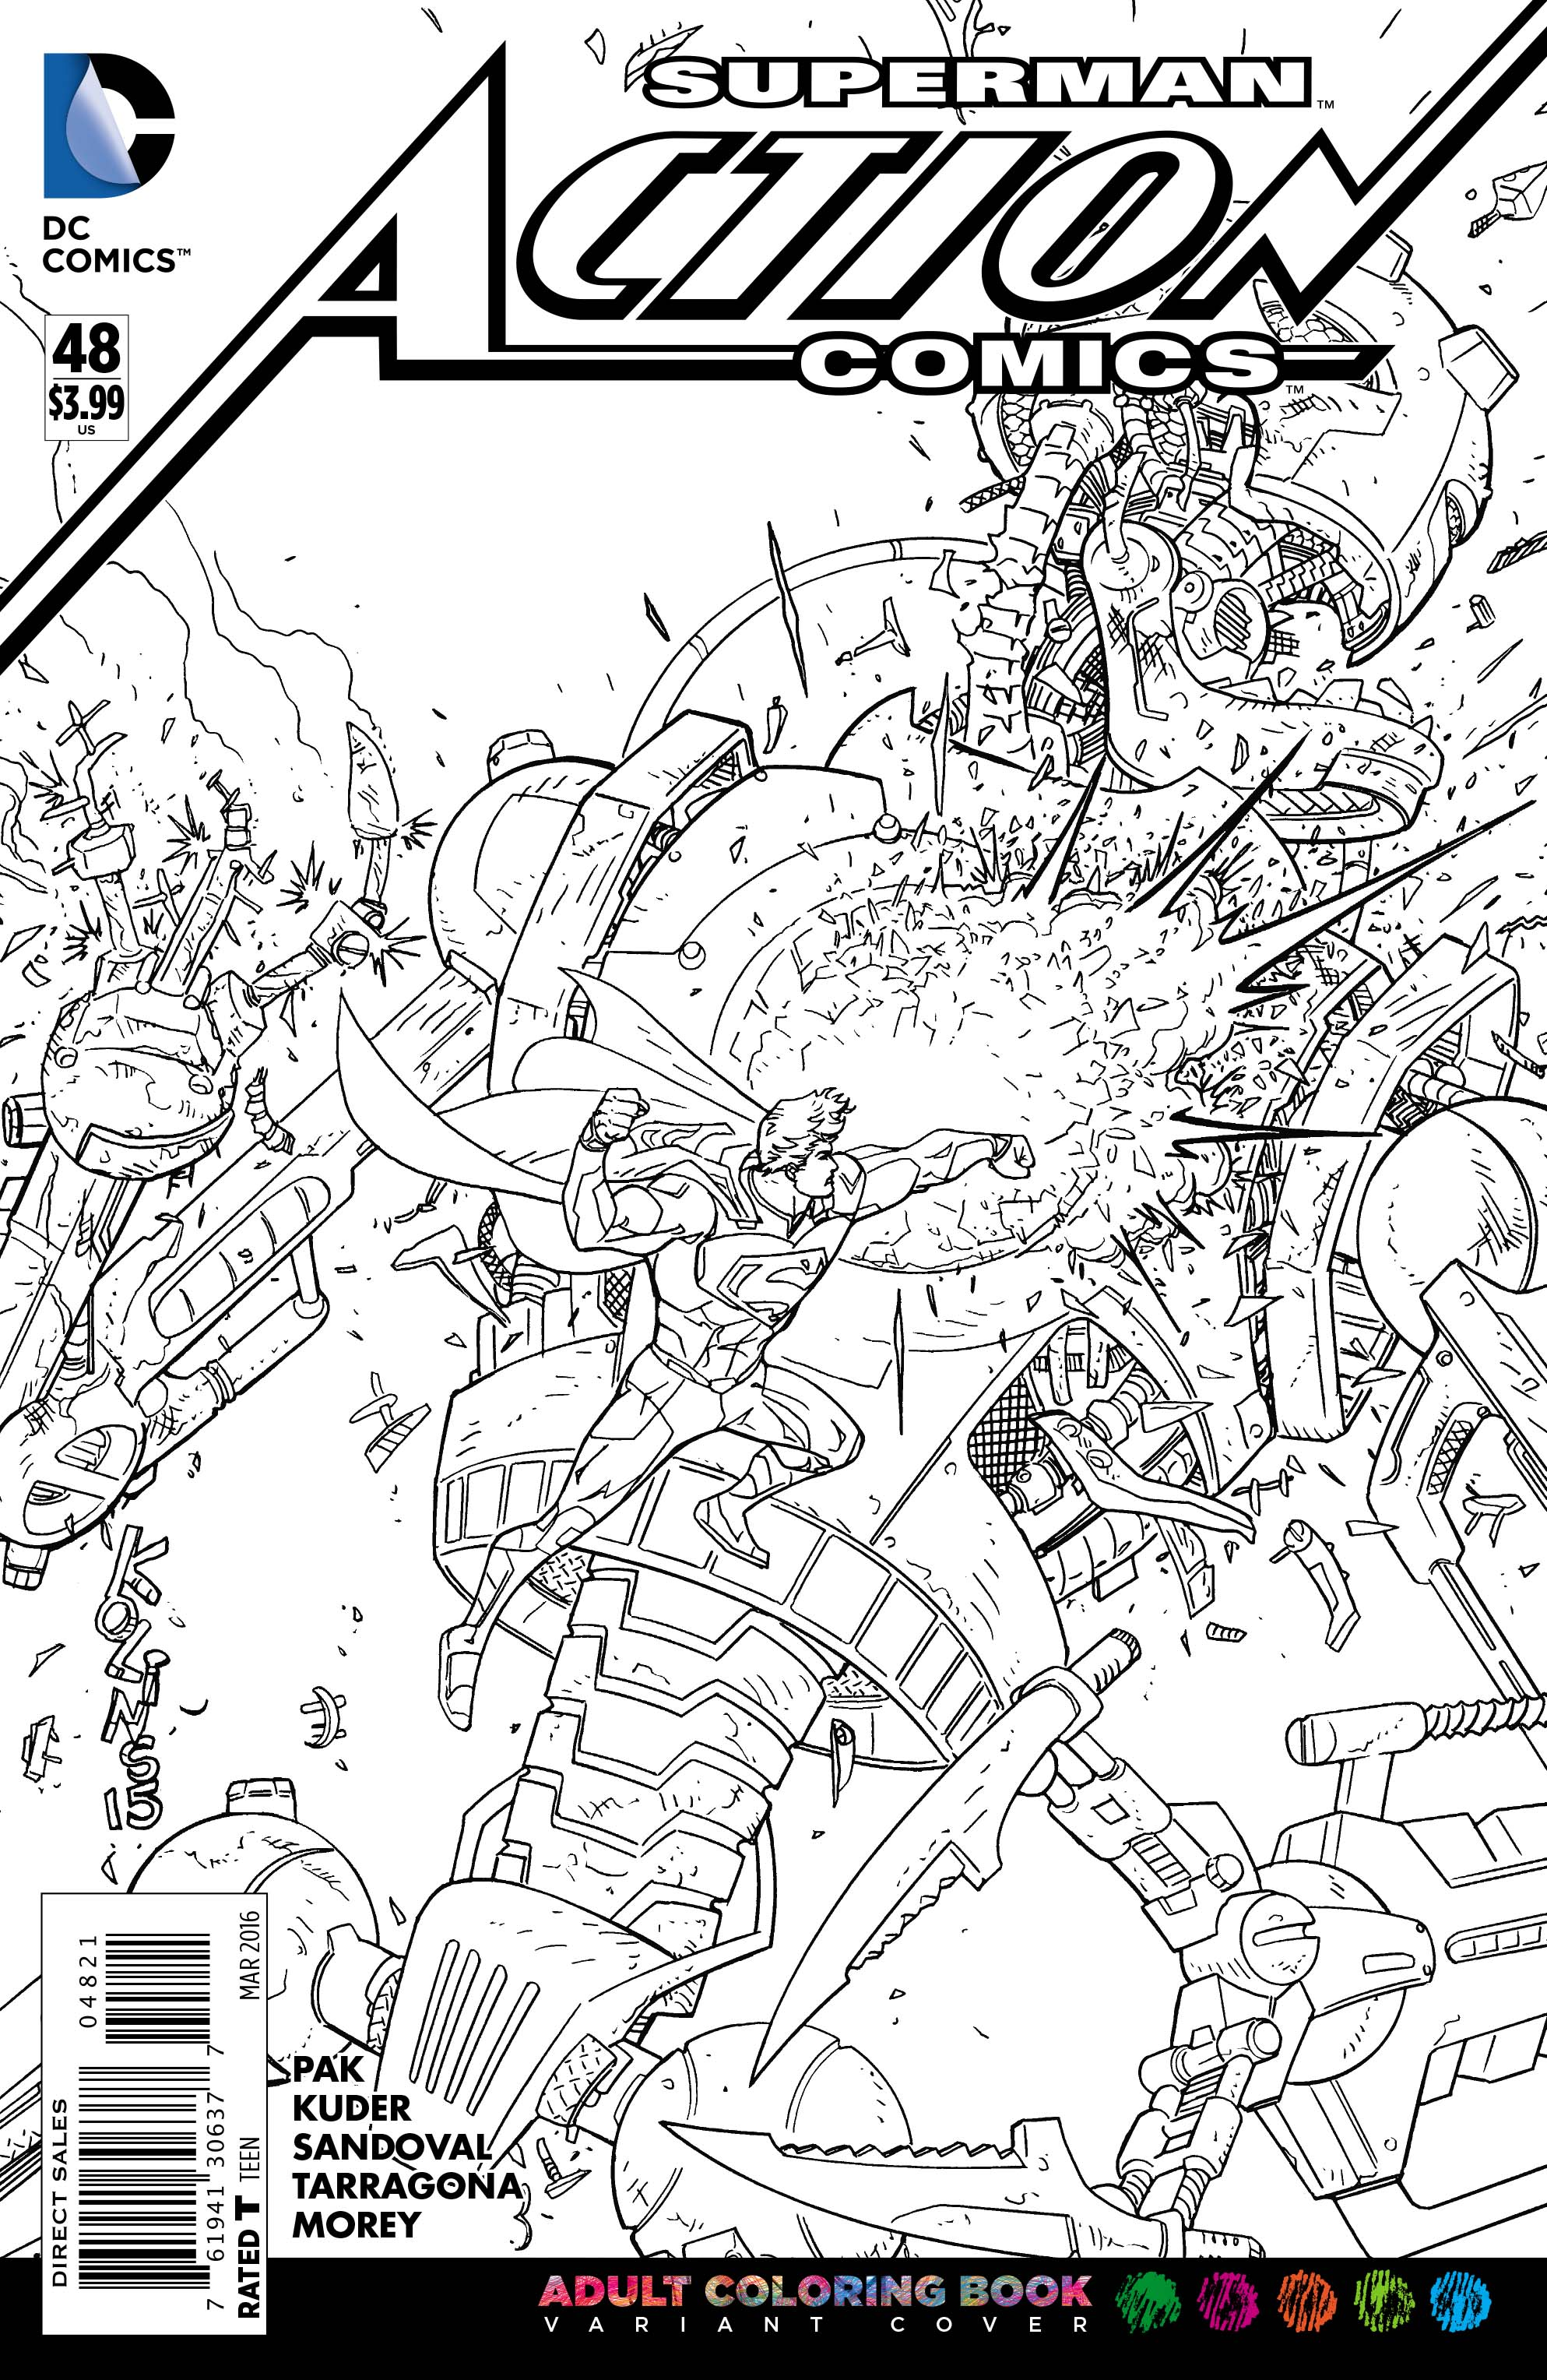 DC\'s Adult Coloring Book Variant Covers Will Make You Feel Like A ...